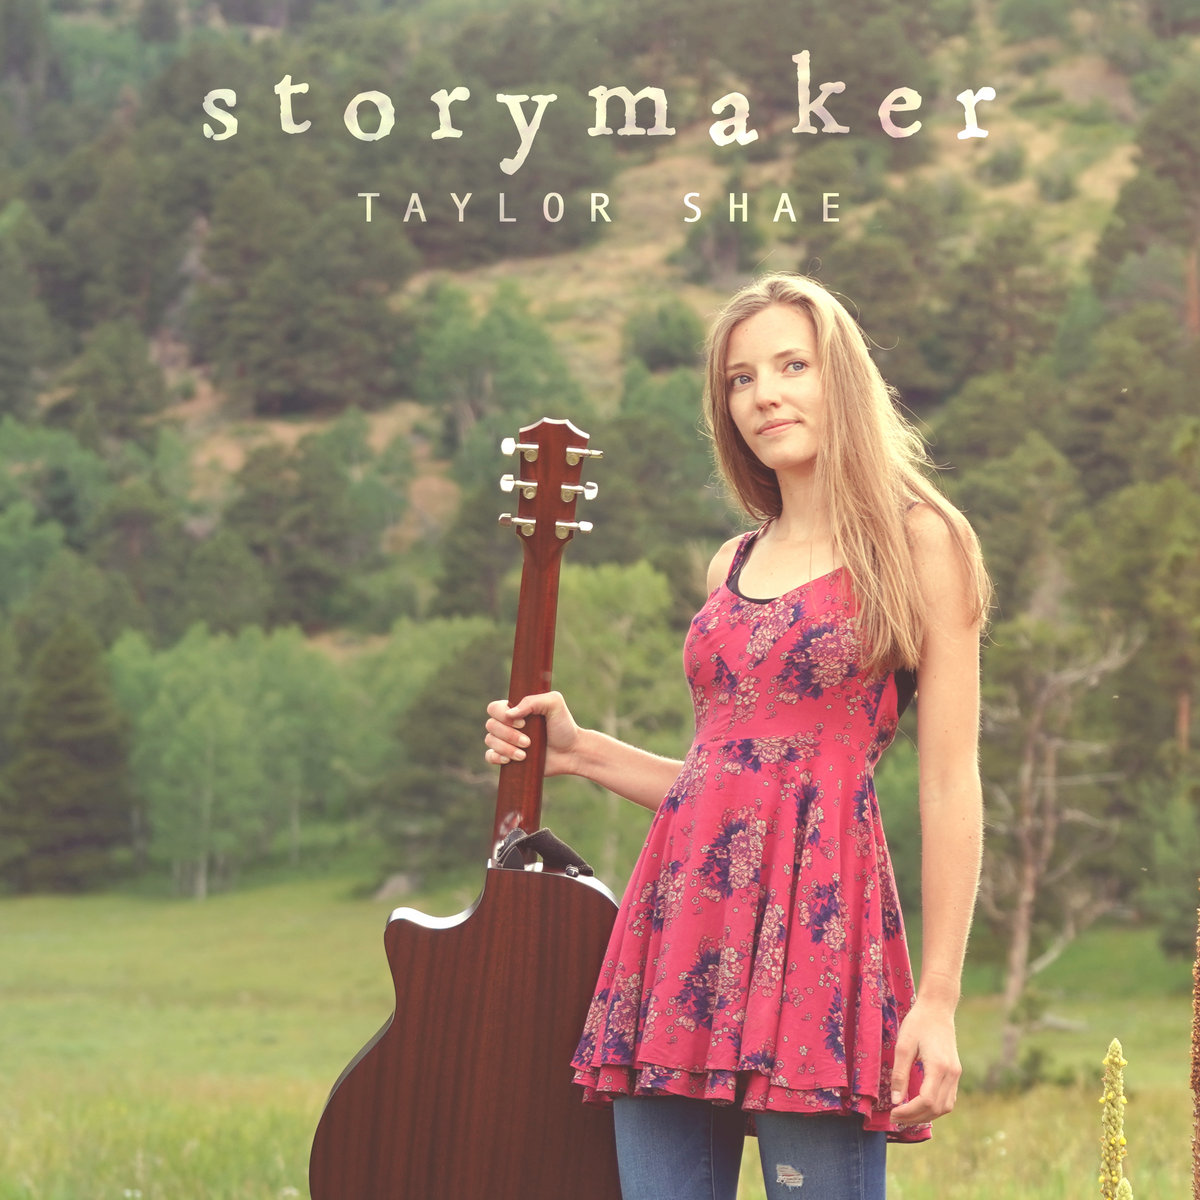 Storymaker by Taylor Shae